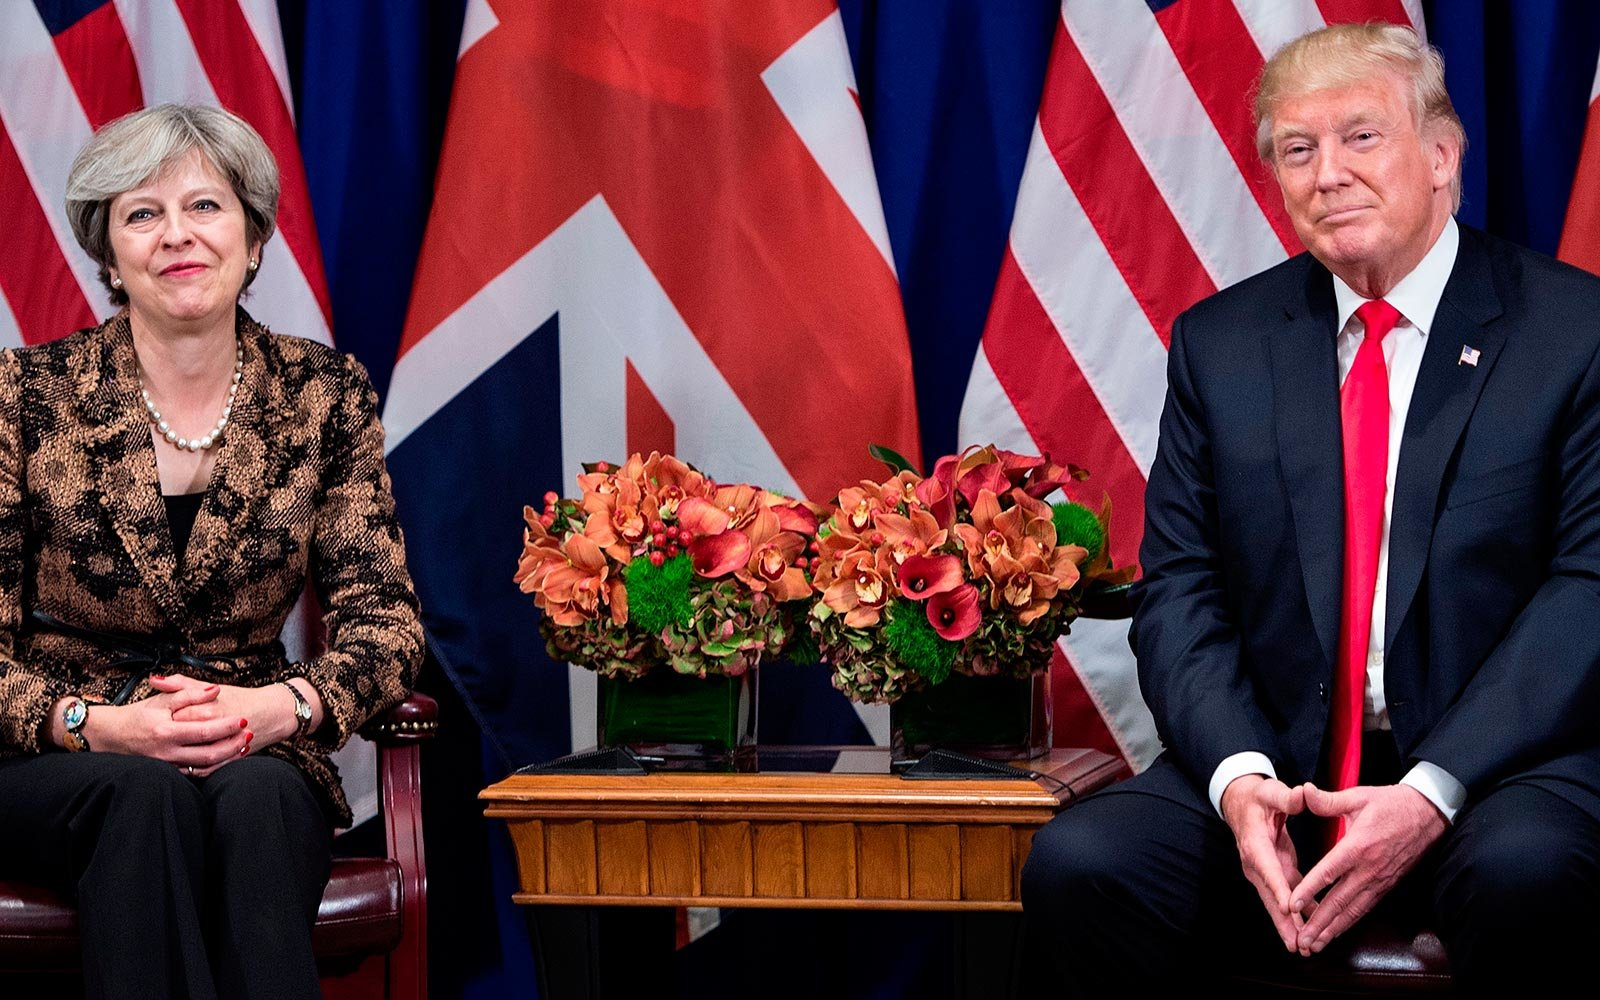 President Trump Cancels Visit to London | Travel + Leisure